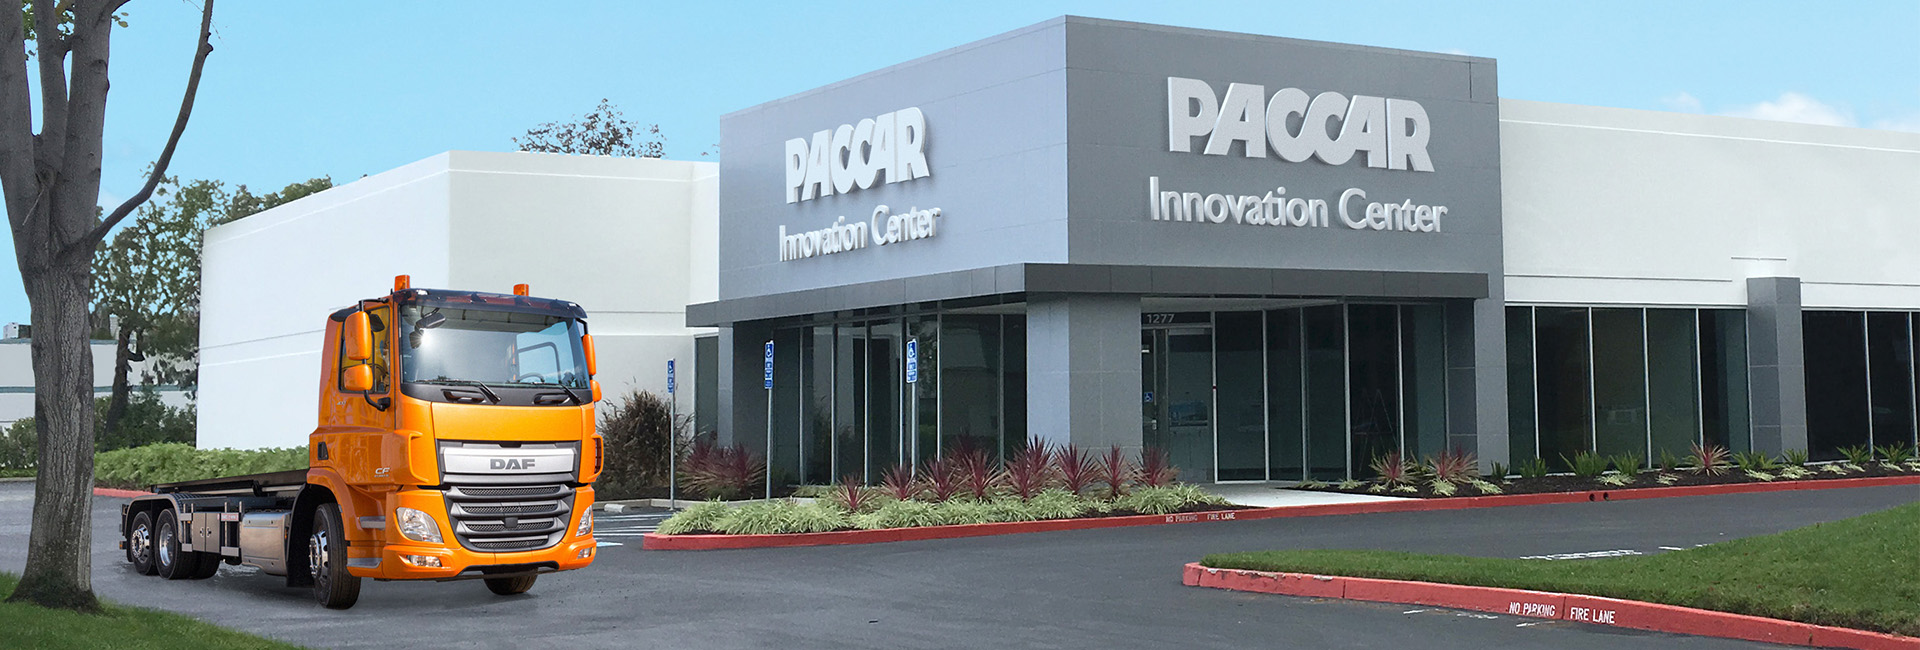 PACCAR Innovation Center PR